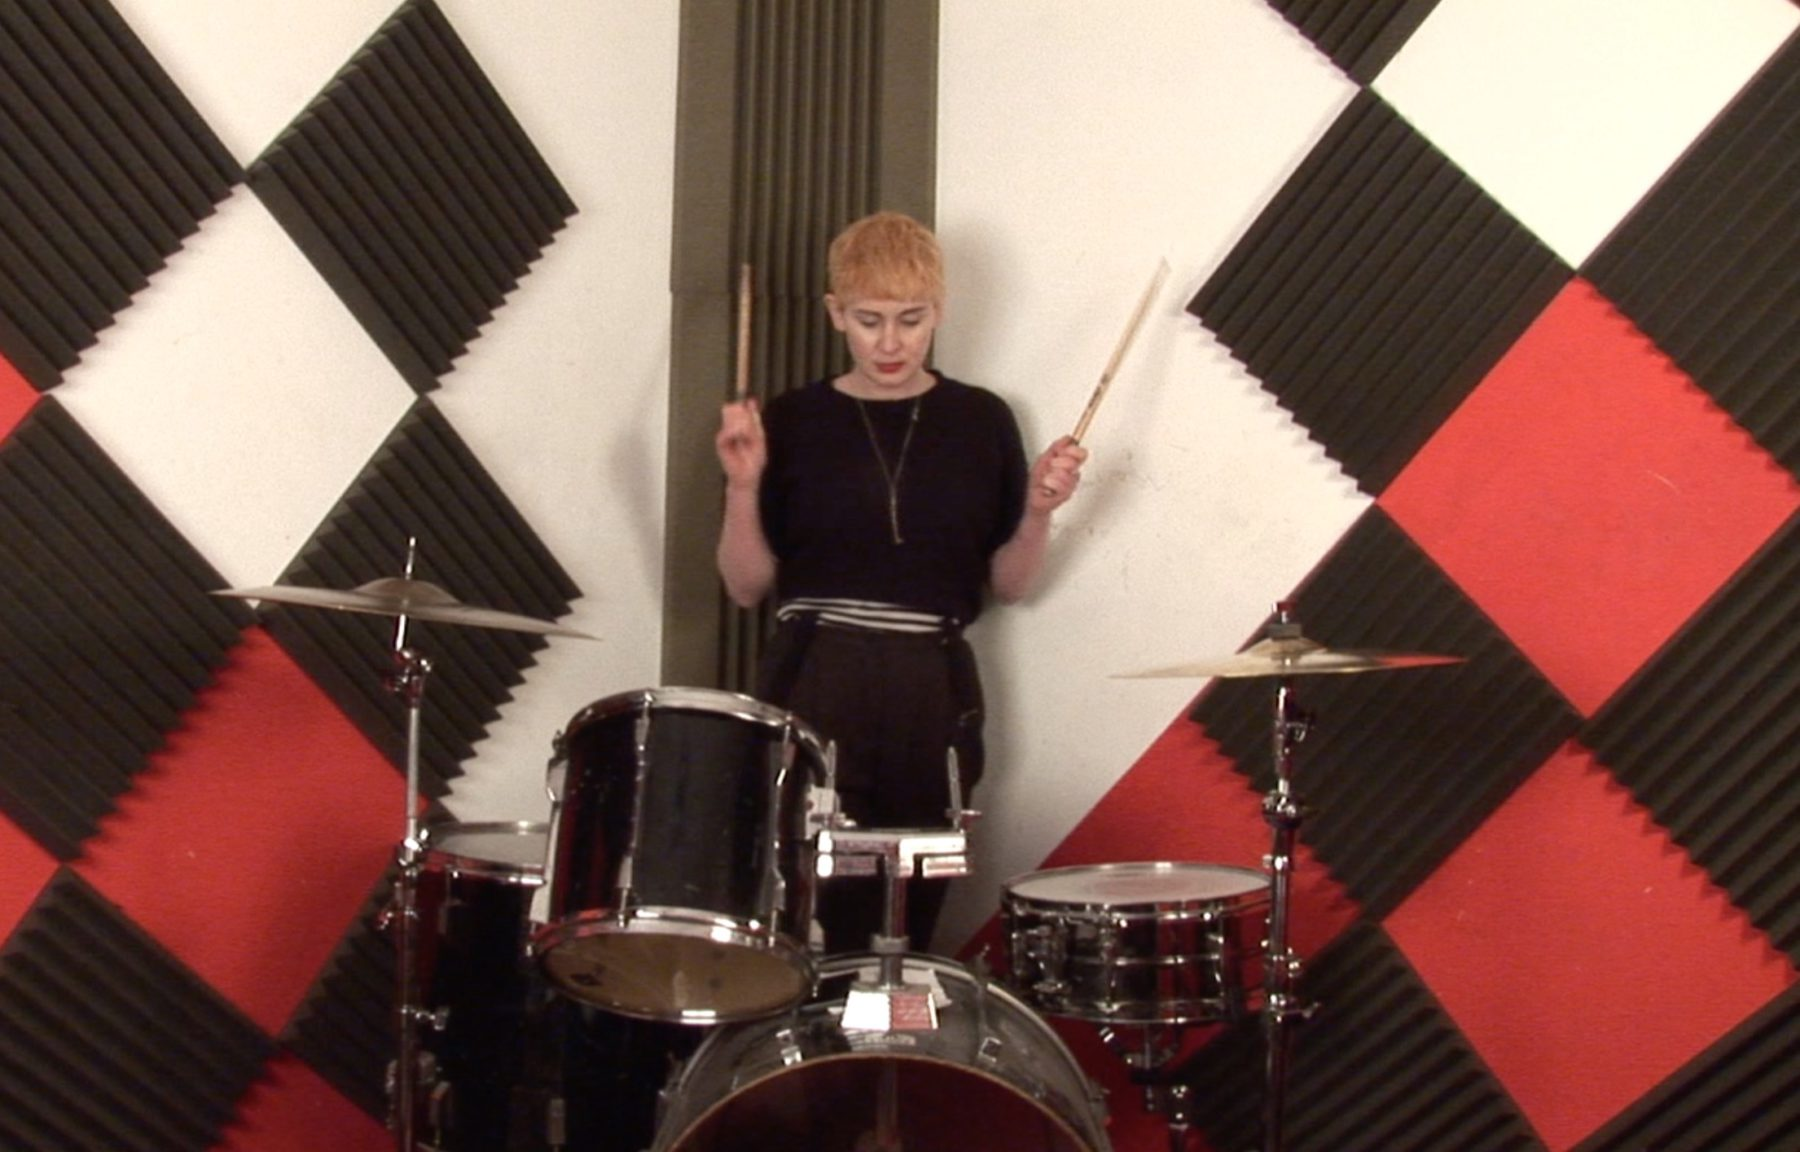 This image shows a person standing playing drums against a checkerboard background